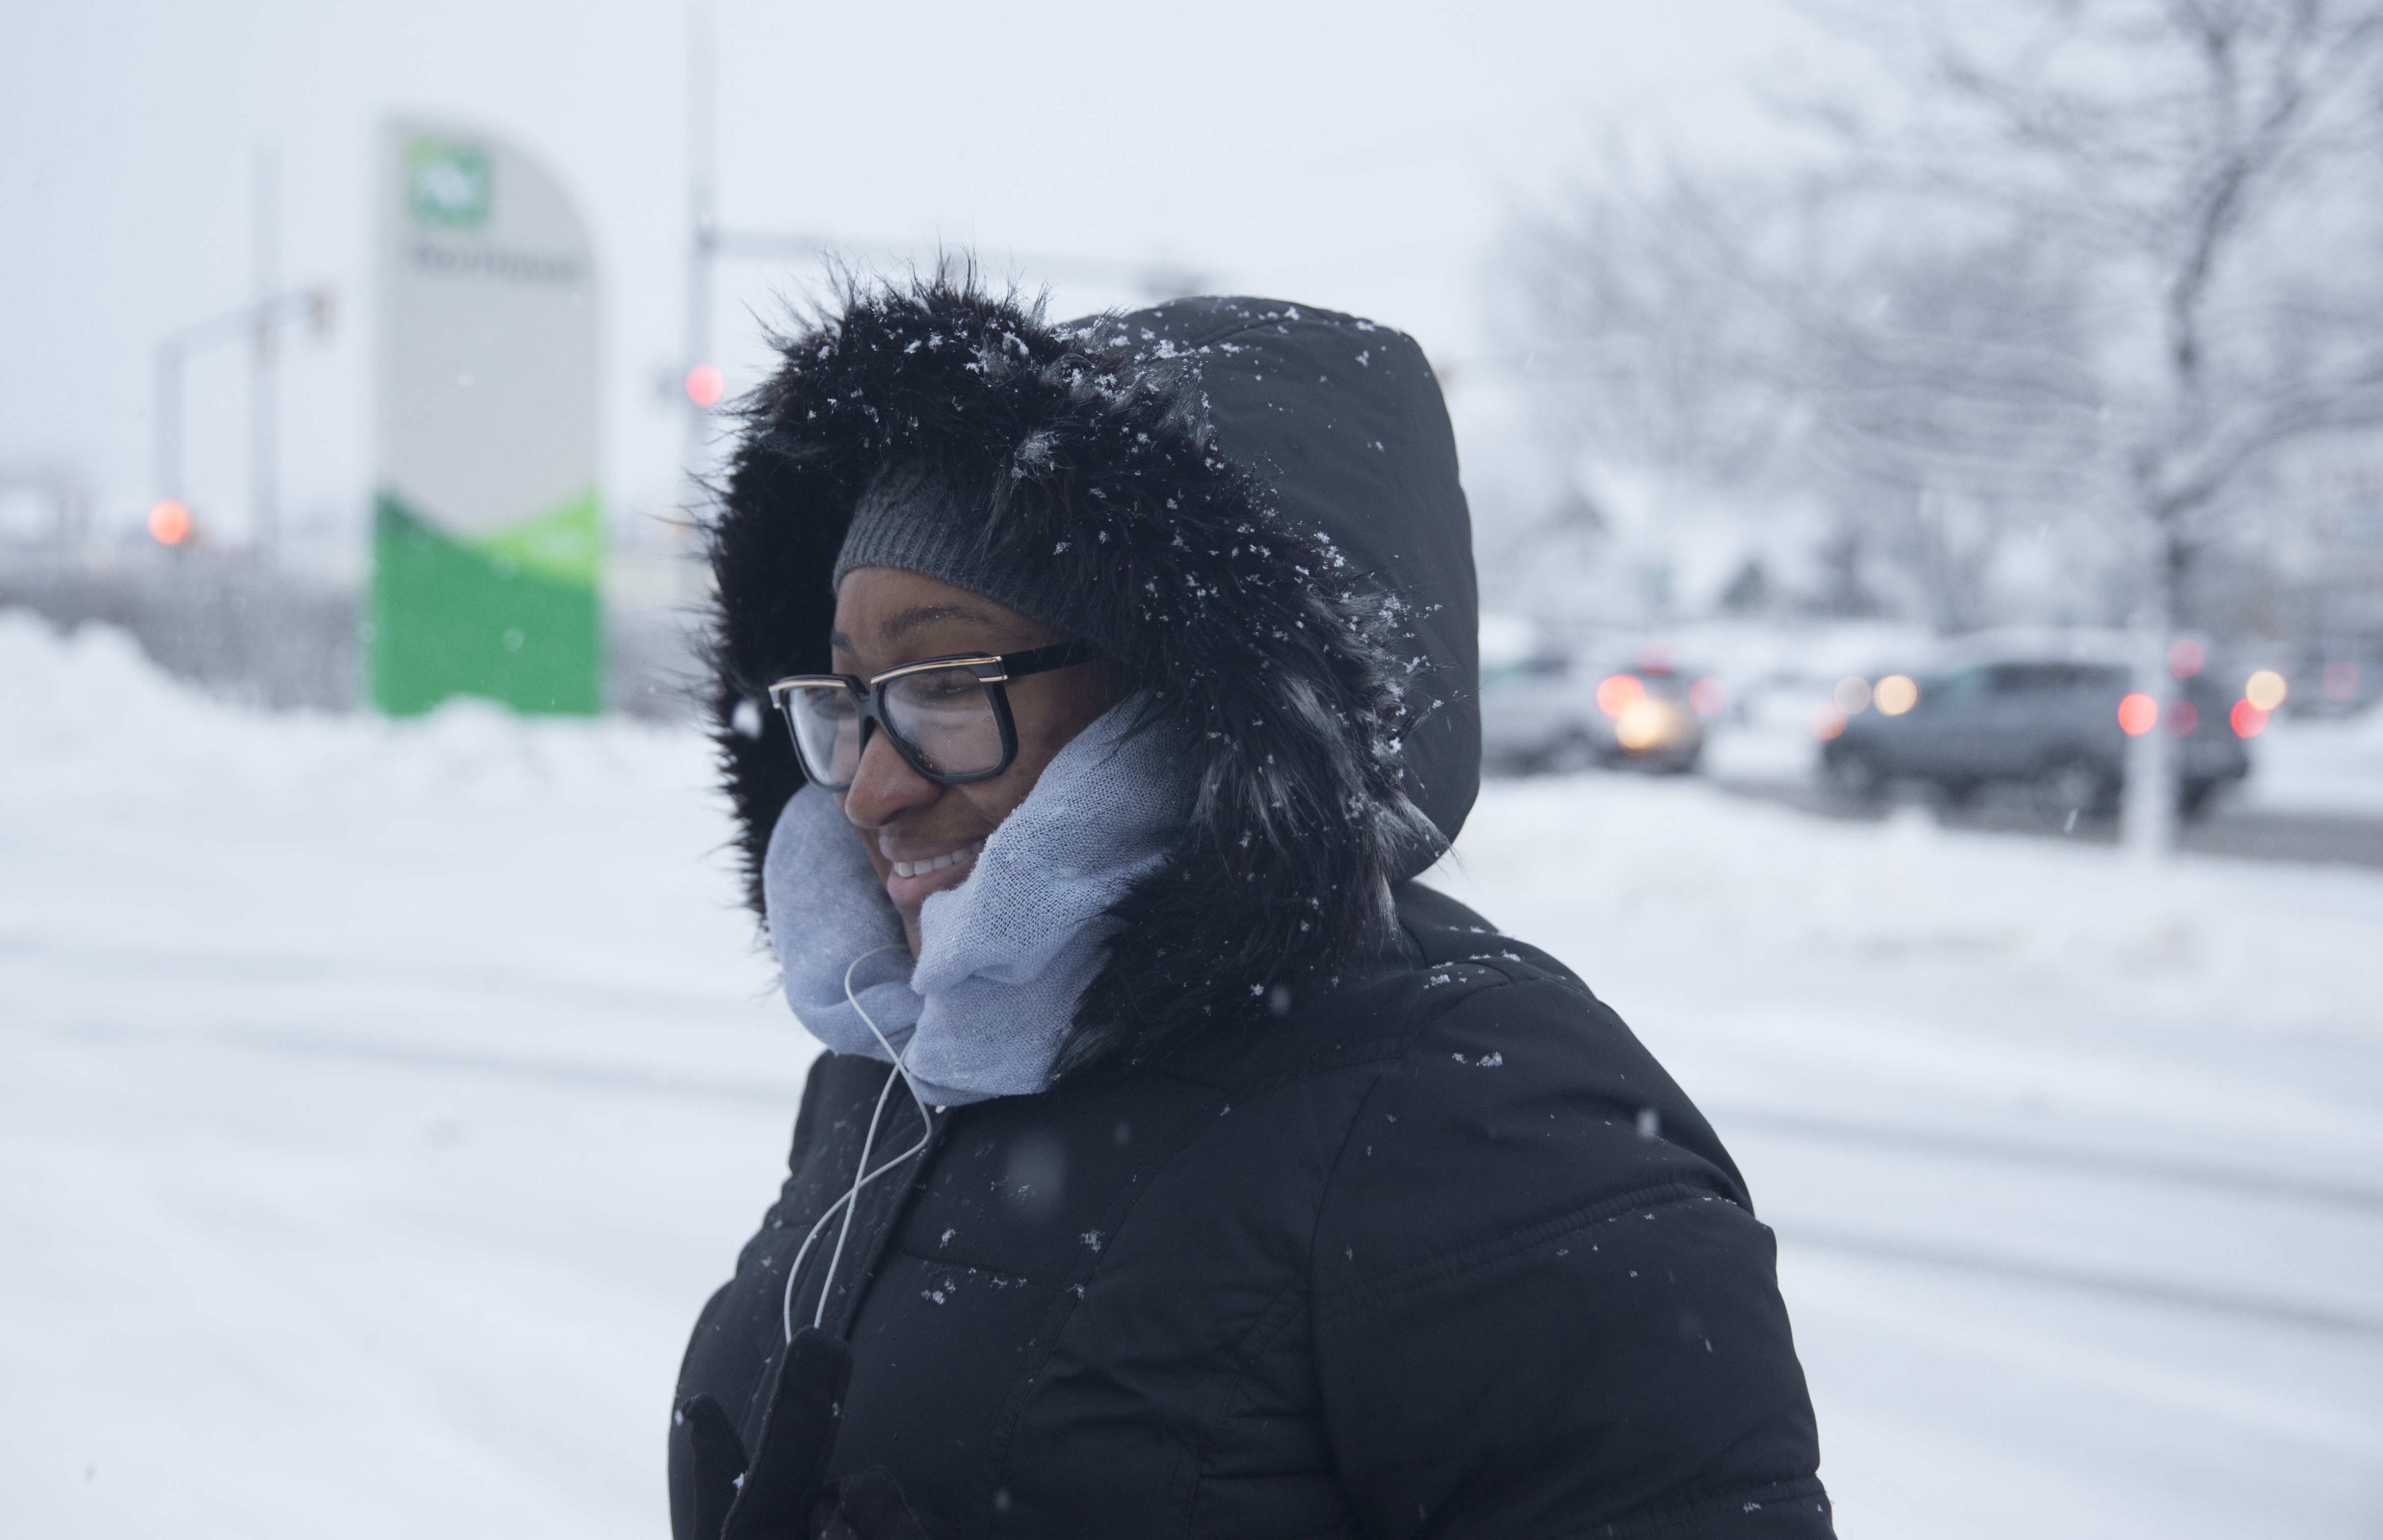 Sheena Davis is all bundled up as she walks to work off  Kenmore and Starin avenues on Thursday. (John Hickey/Buffalo News)